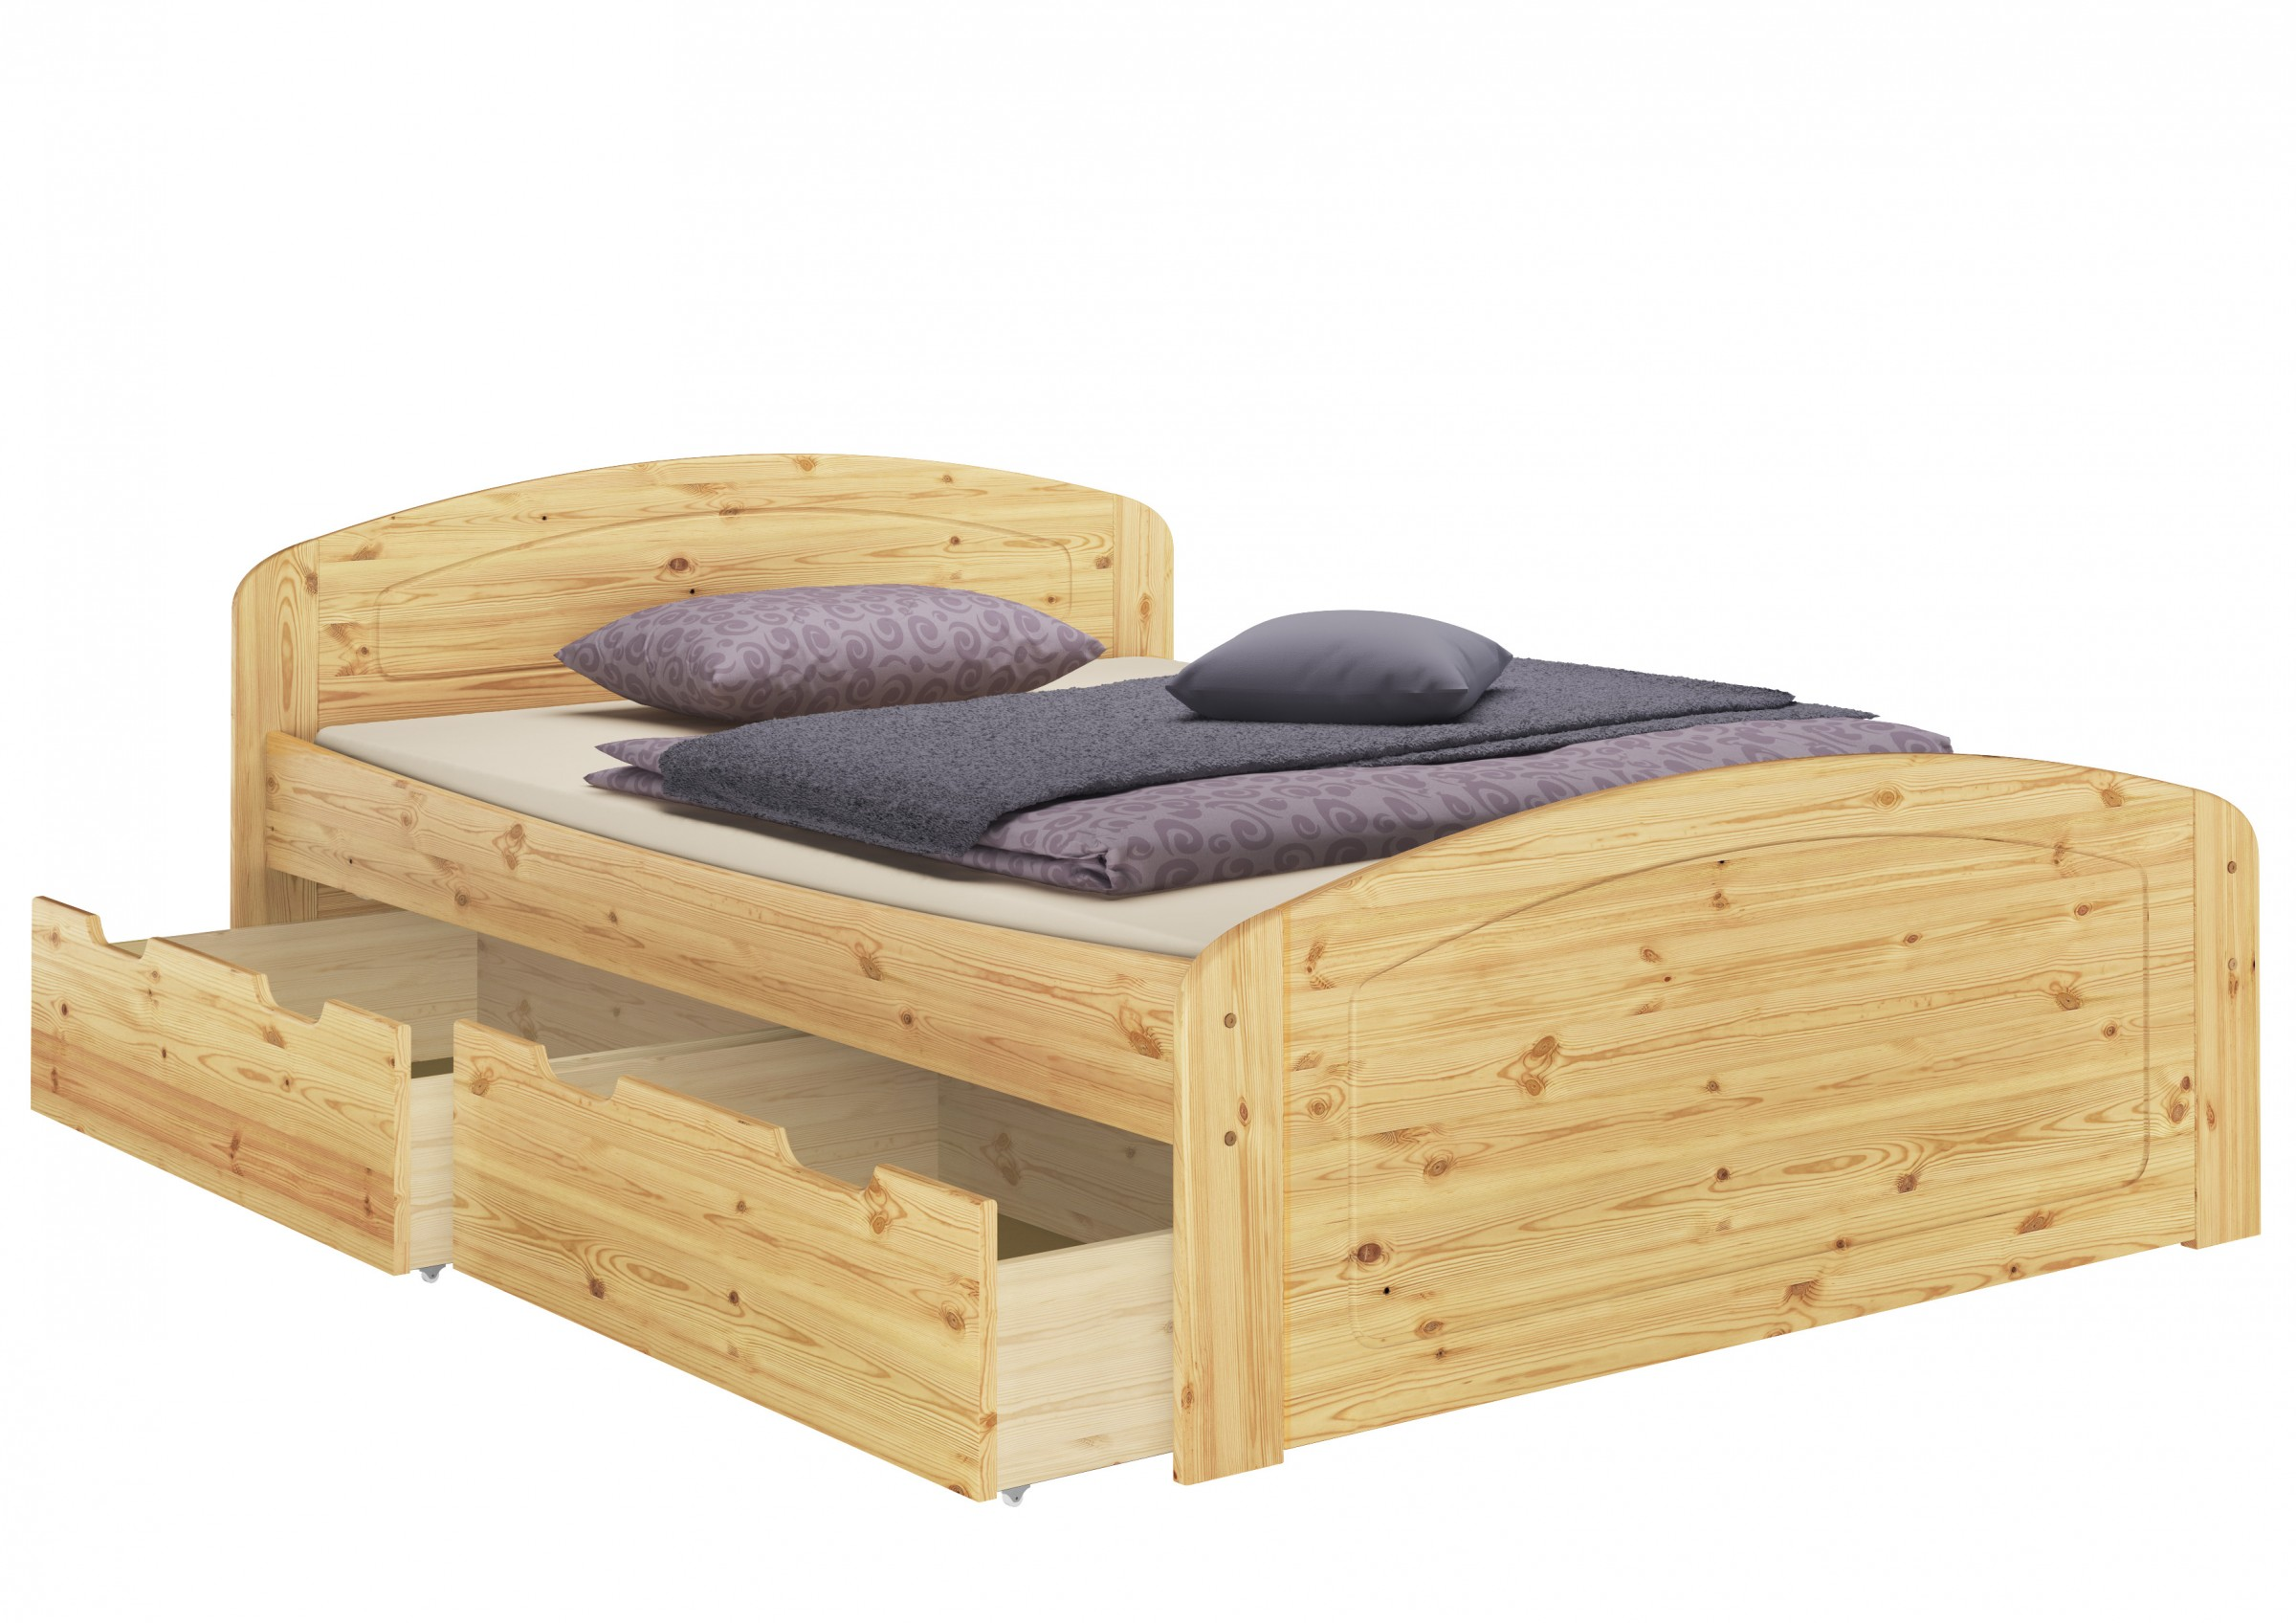 funktionsbett 160x200 holzbett bettkasten rollrost matratze bettzeug mb ebay. Black Bedroom Furniture Sets. Home Design Ideas